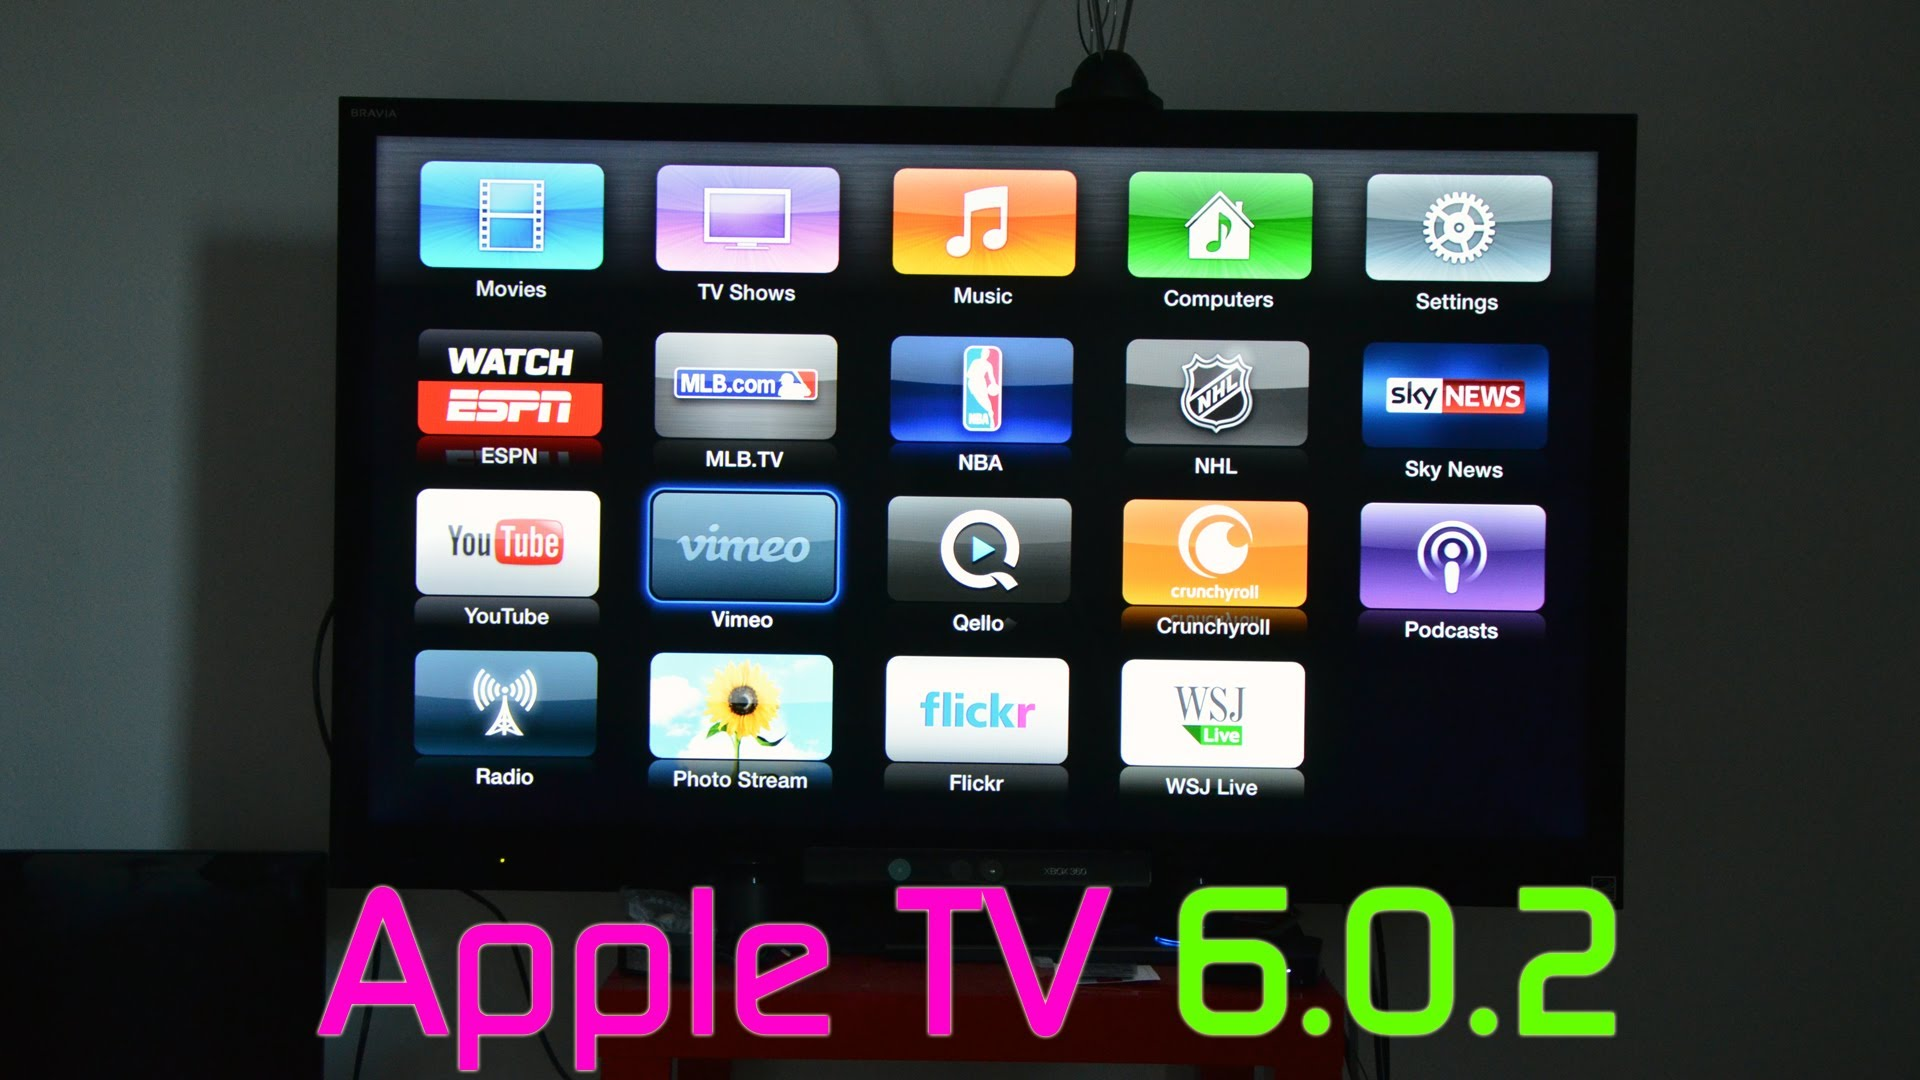 Apple TV 6.0.2